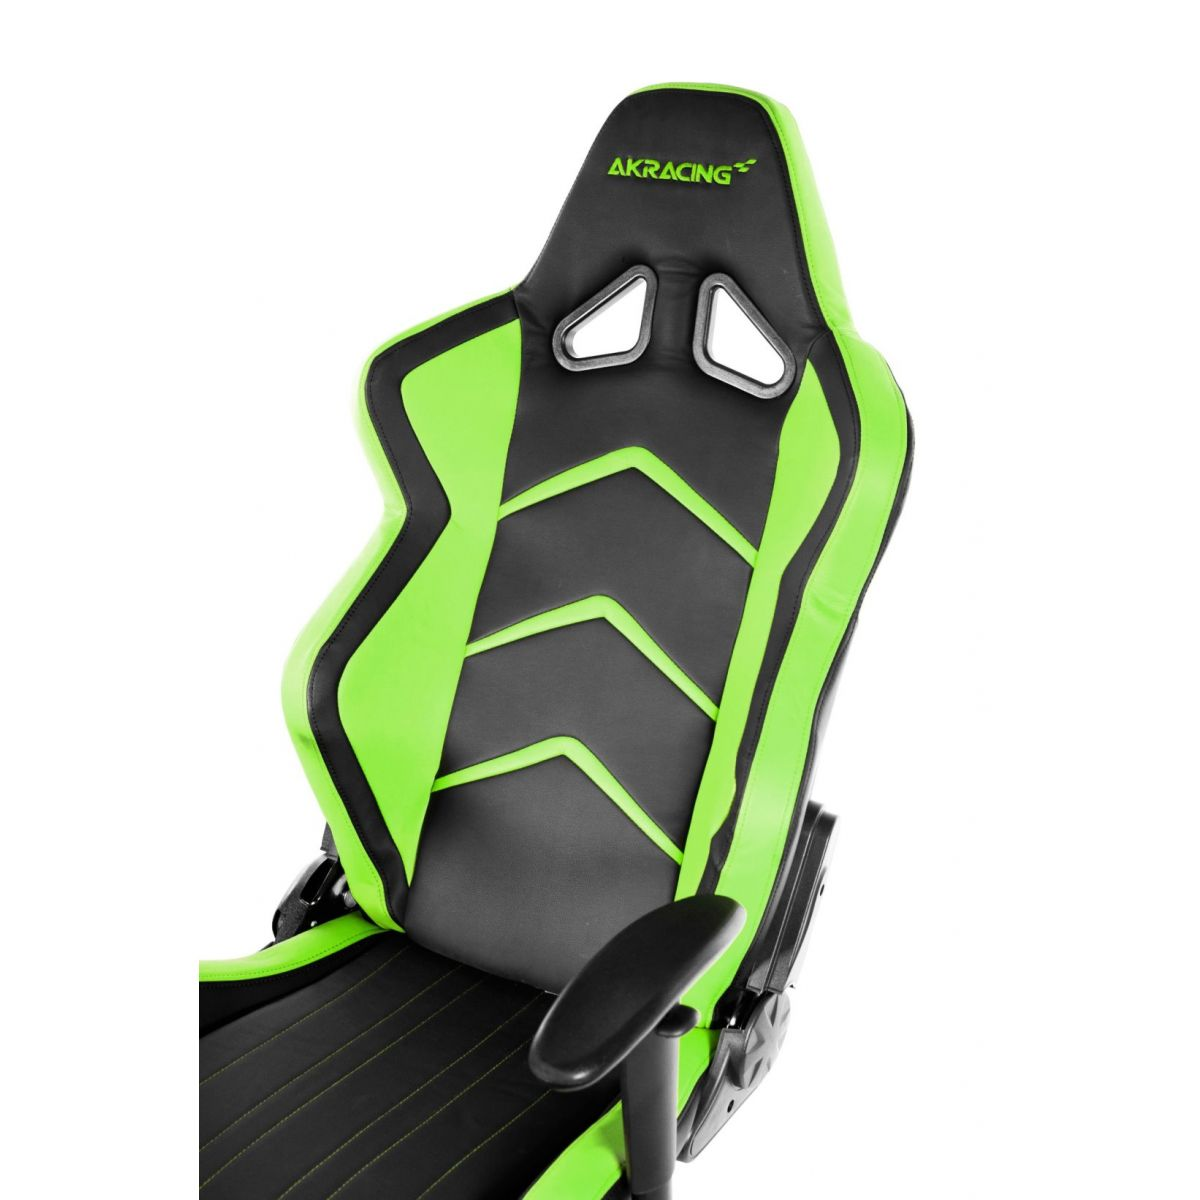 Cadeira AKRacing Player Gaming Black/Green AK-K6014-BG - AKRacing